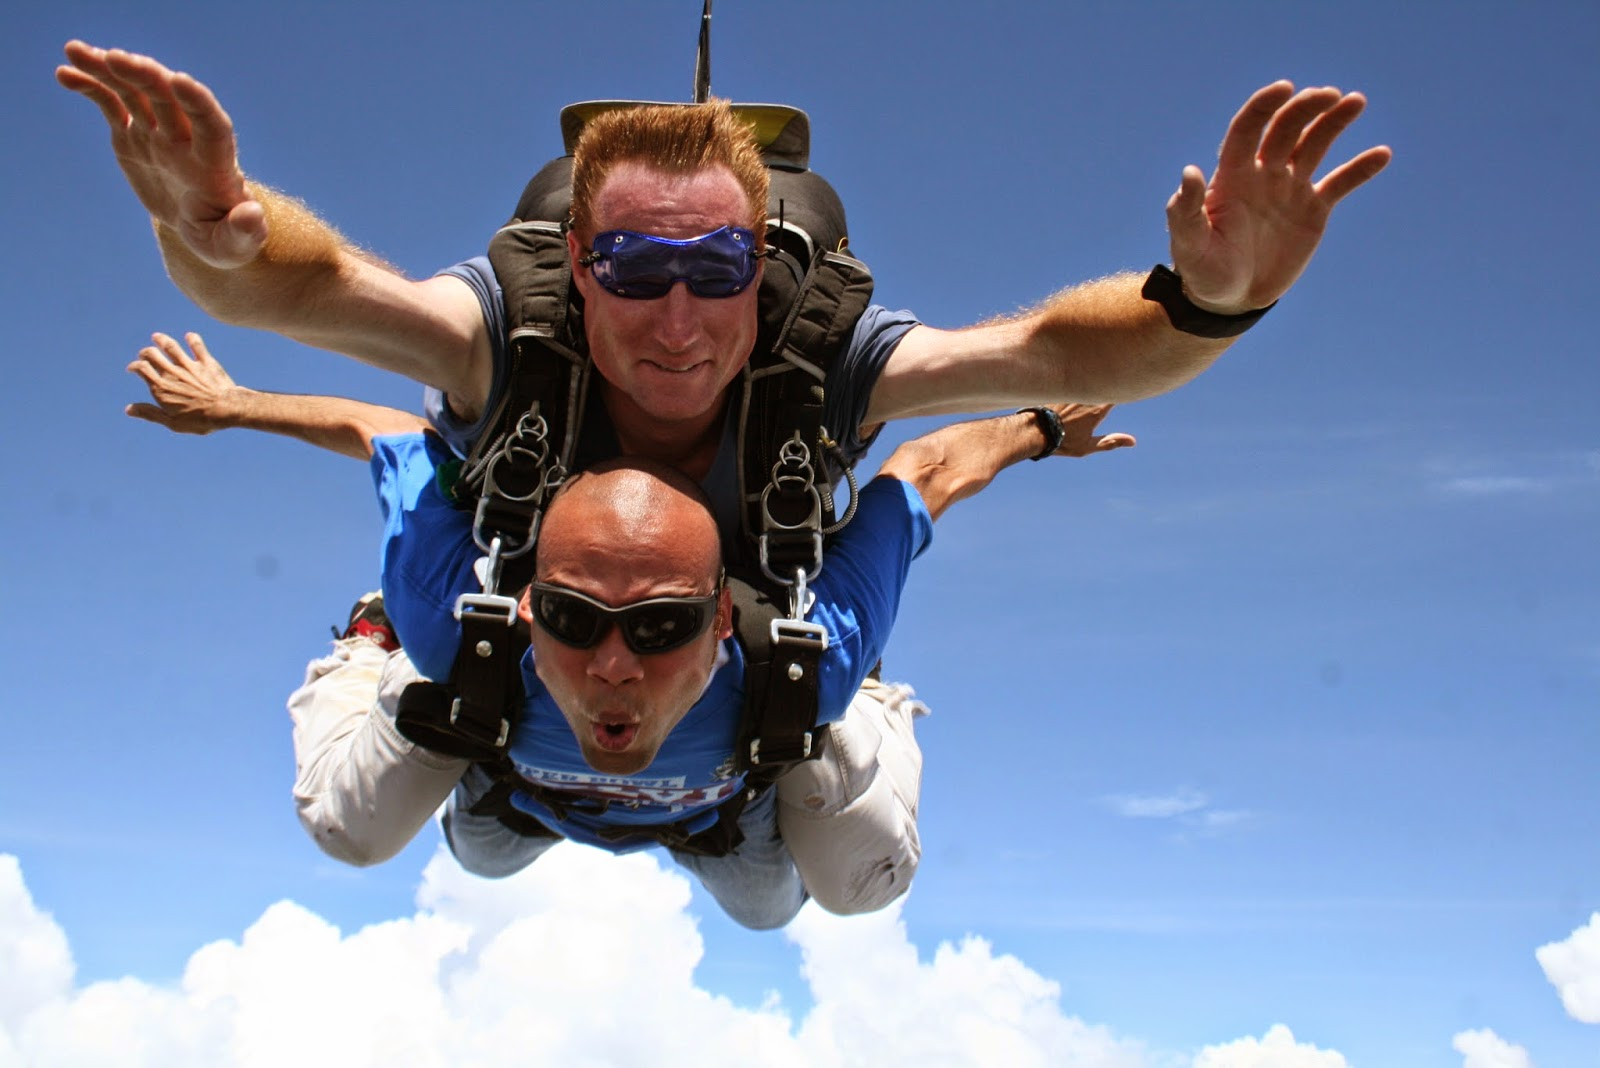 Accelerated Freefall Or Tandem?: RushCube Skydive Tips